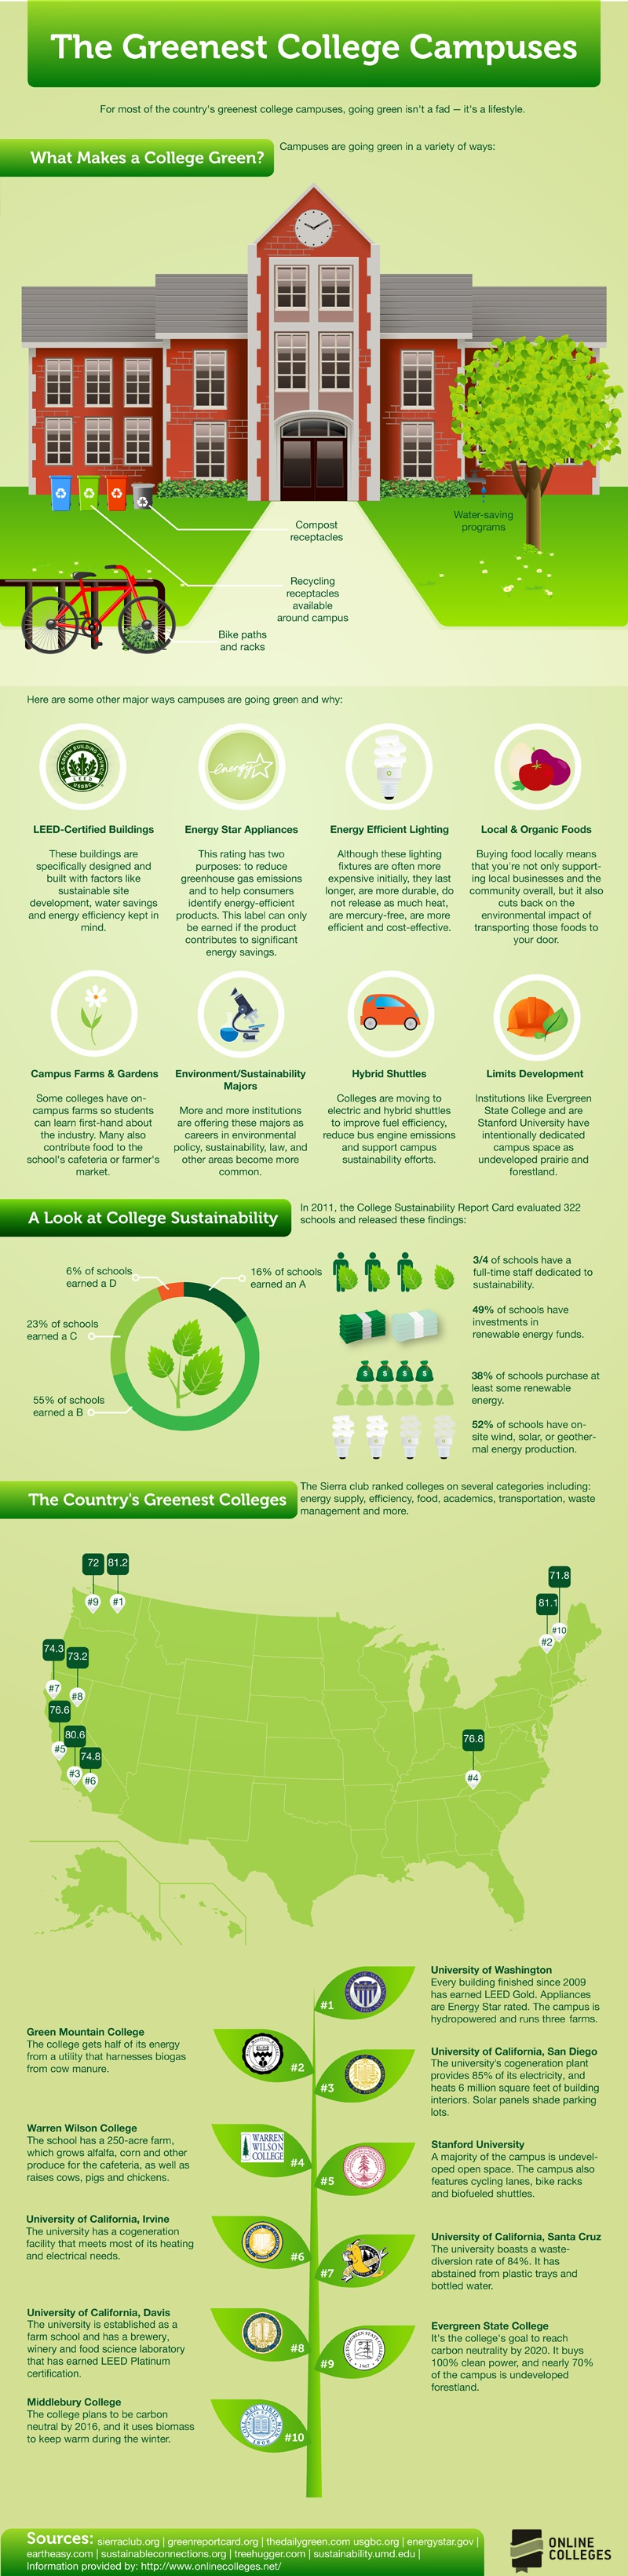 the-greenest-college-campuses